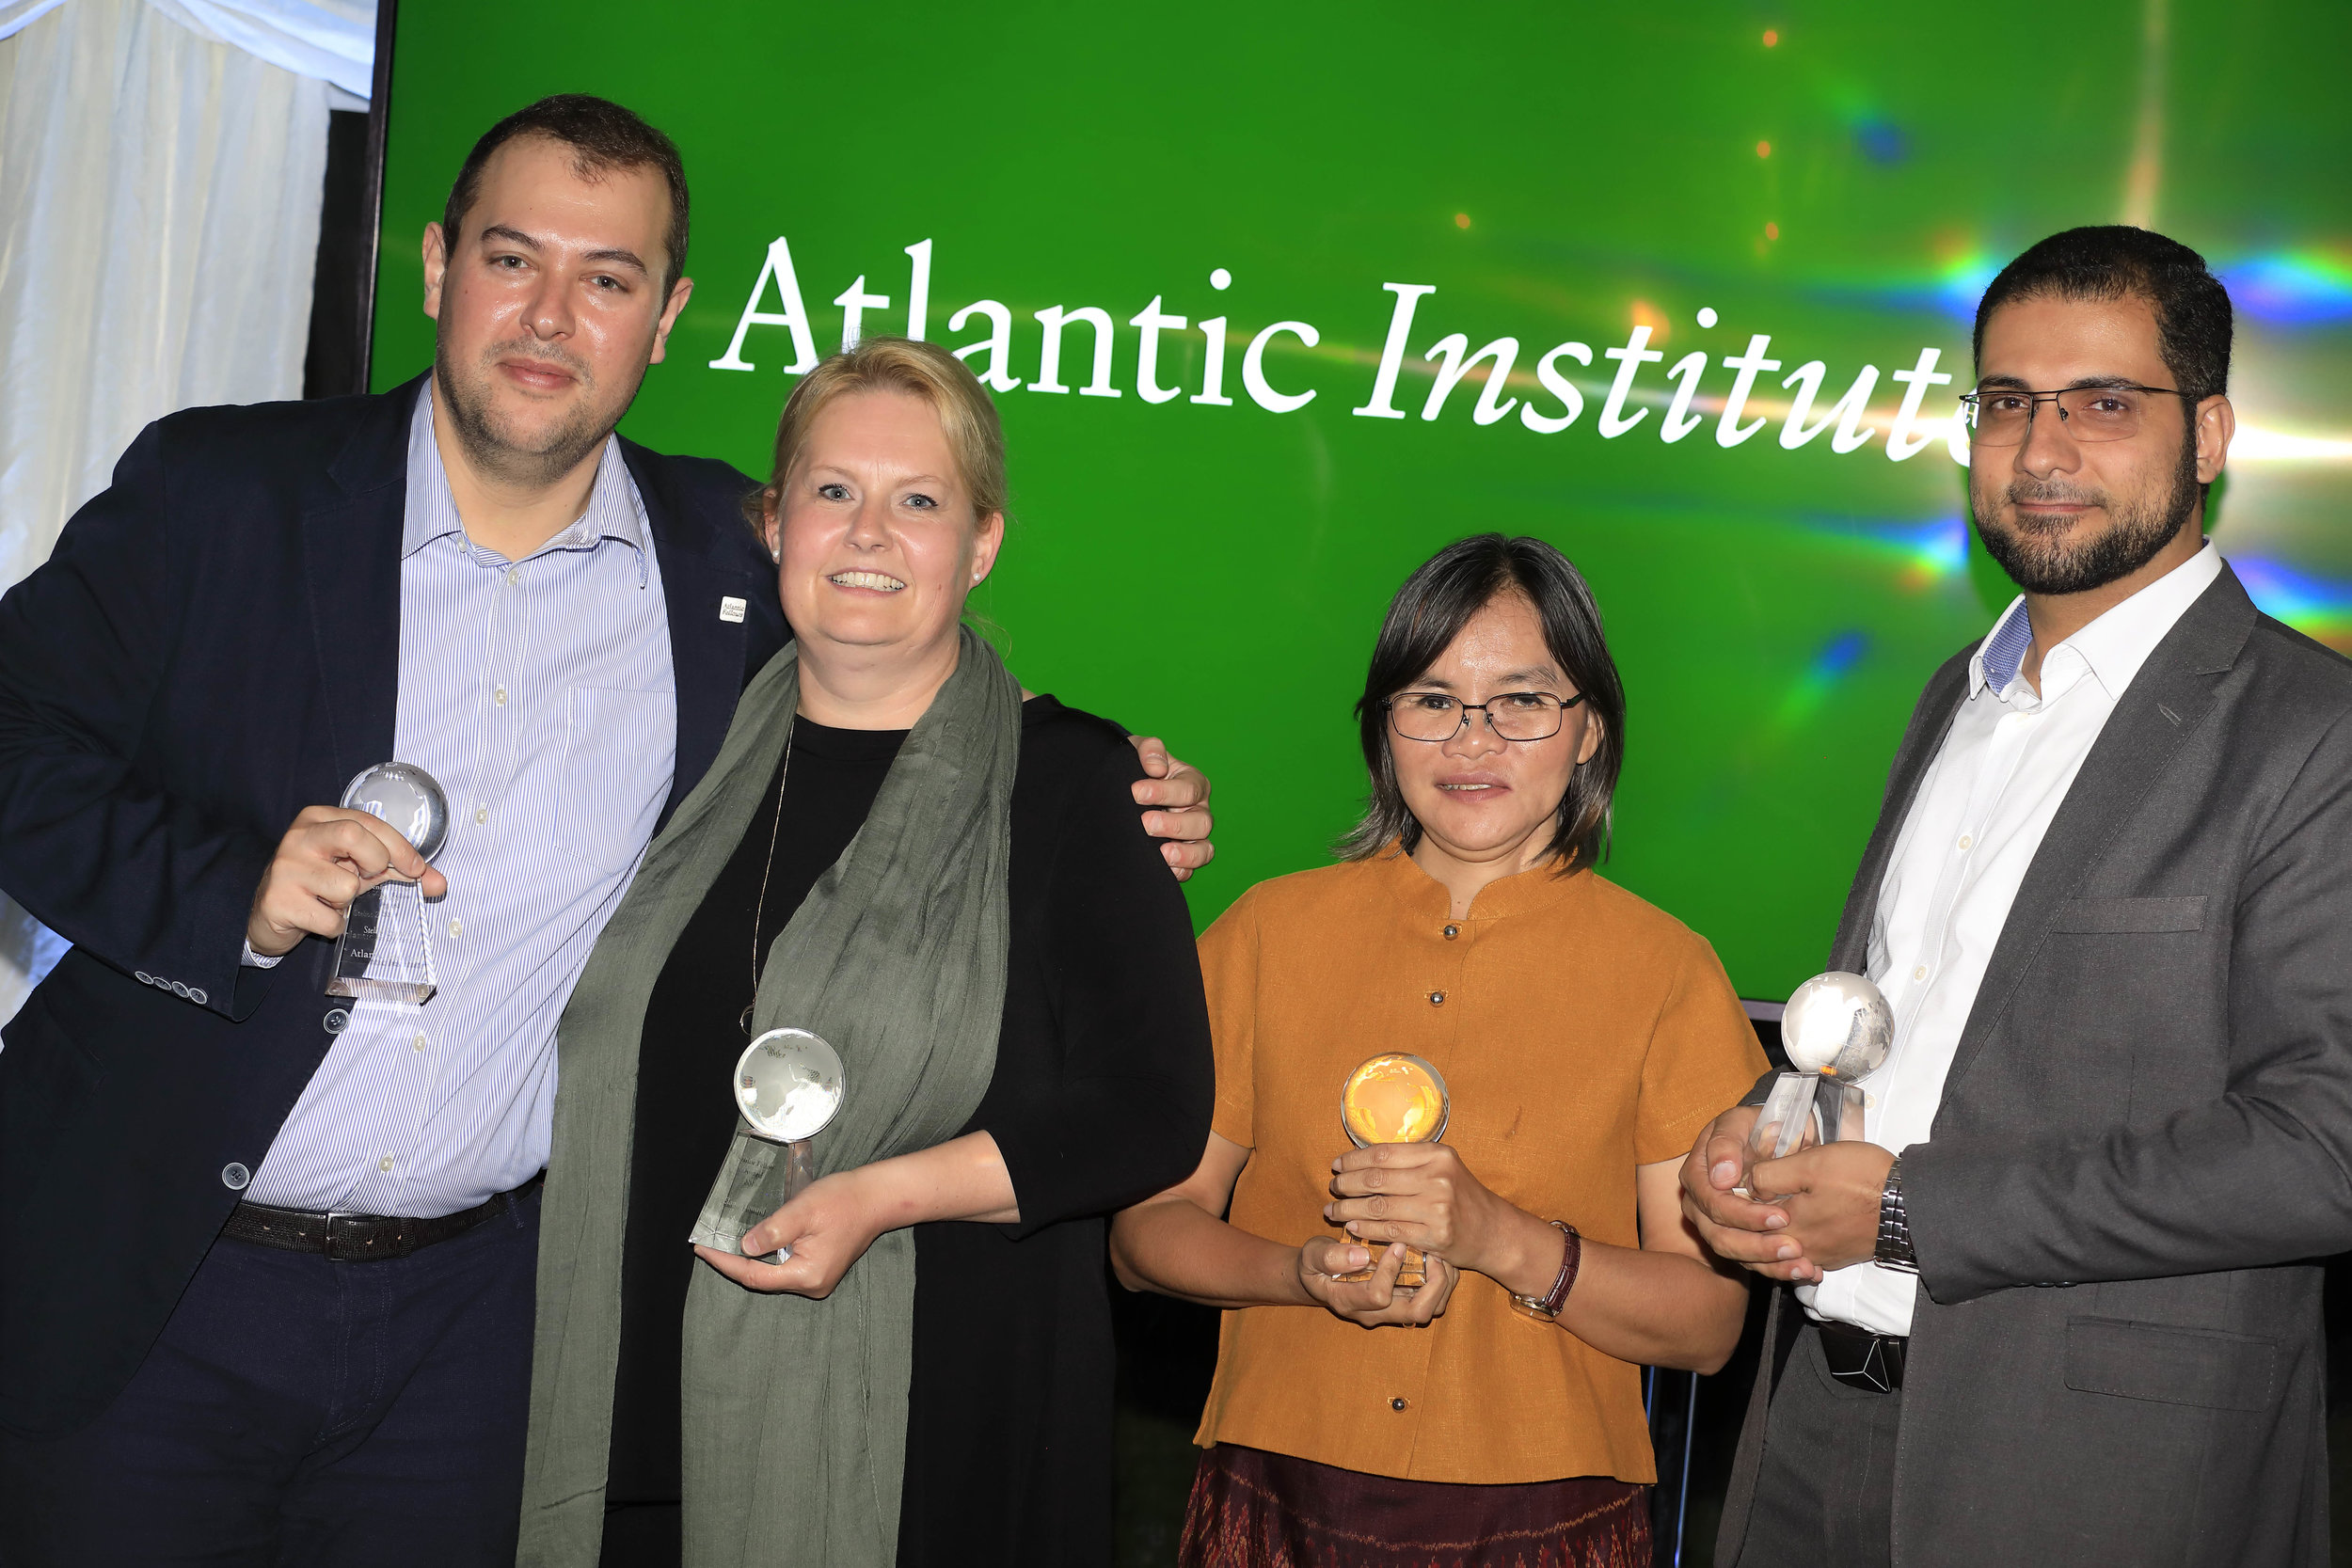 Winners of the inaugural Atlantic Senior Fellows Awards: Stelios Zygouris, Elaine Howard, Somporn Pengkam and Hany Ibrahim. (Beverly Ho, not in photo)